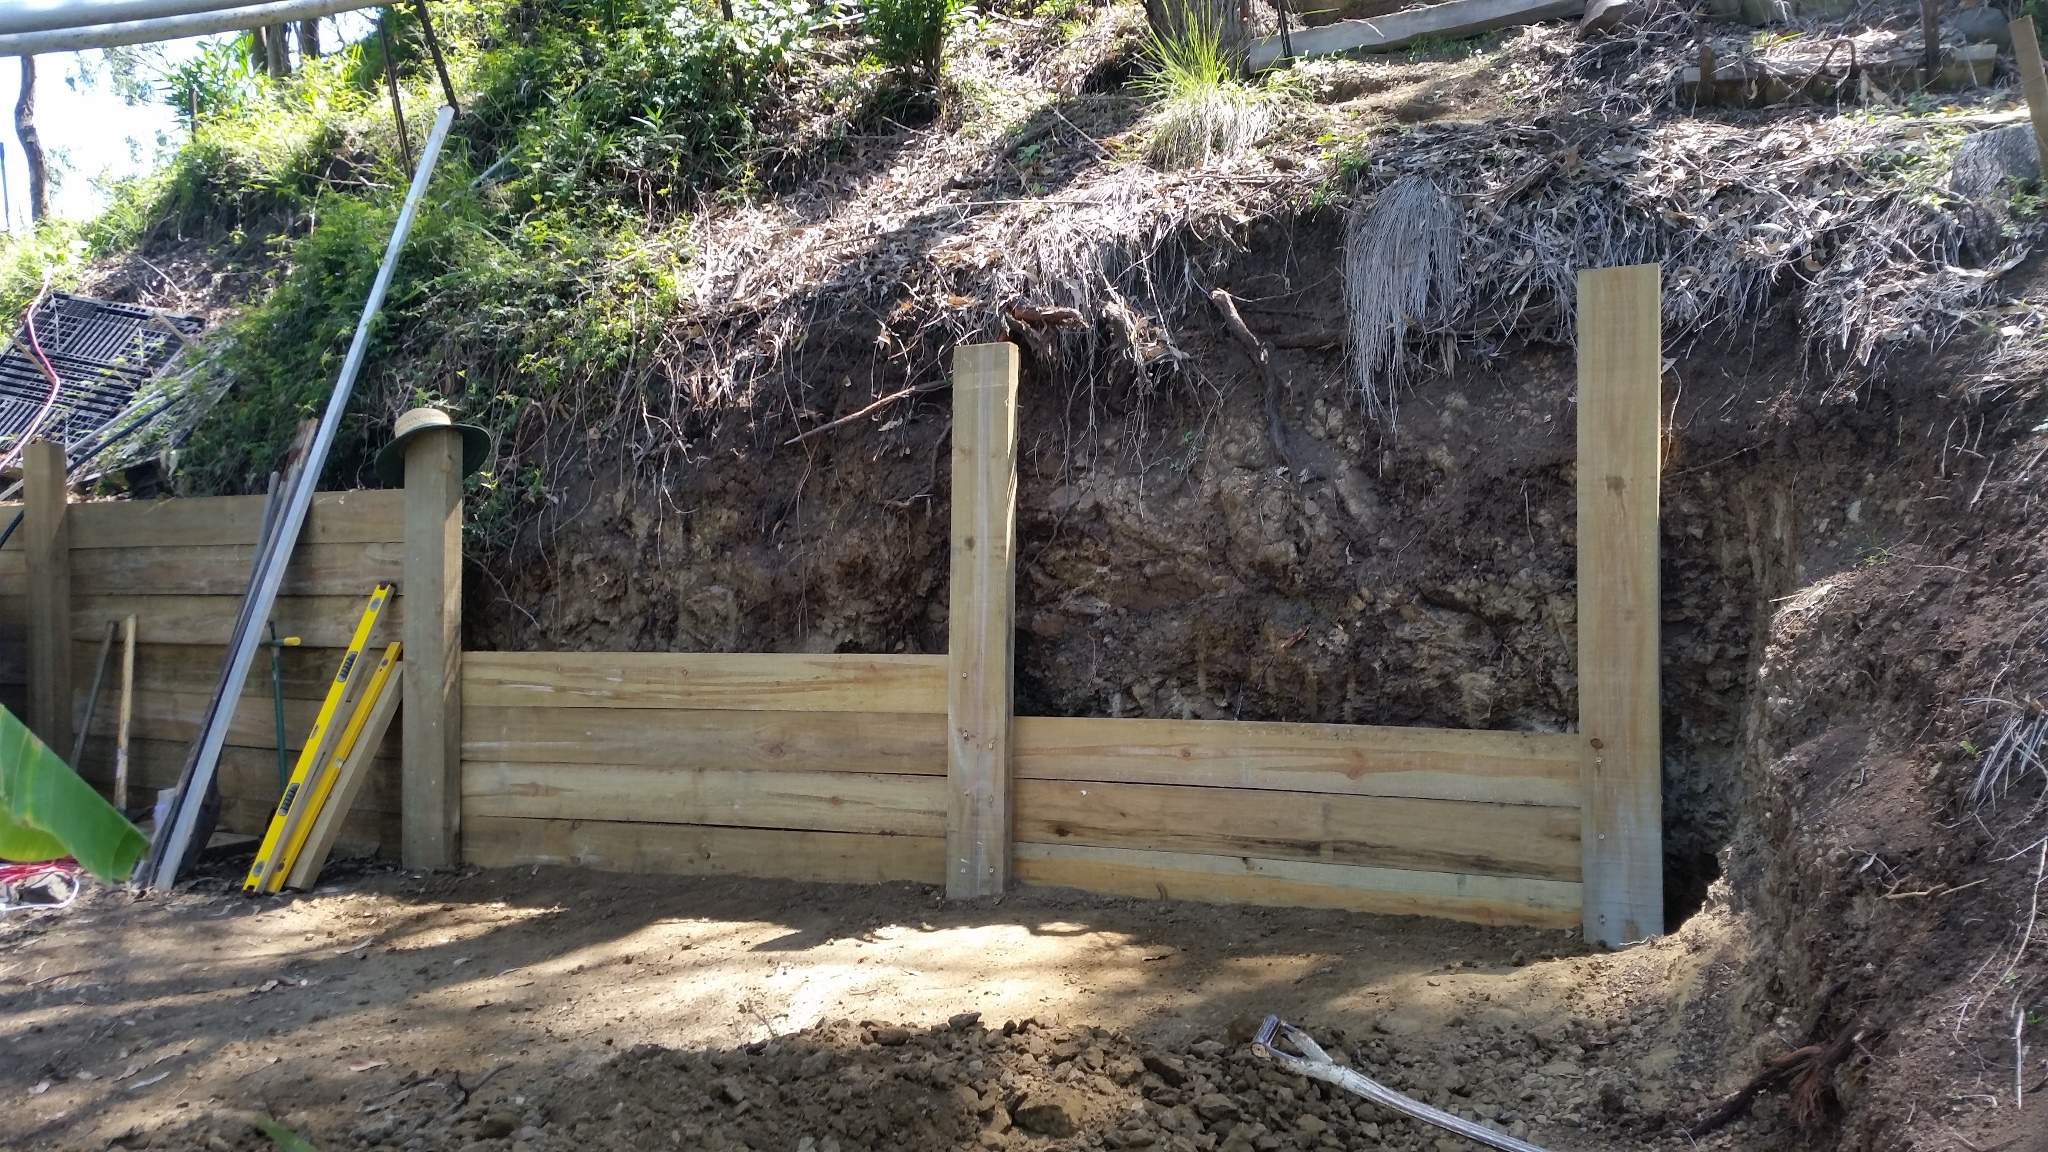 Compost Wall - Partly completed